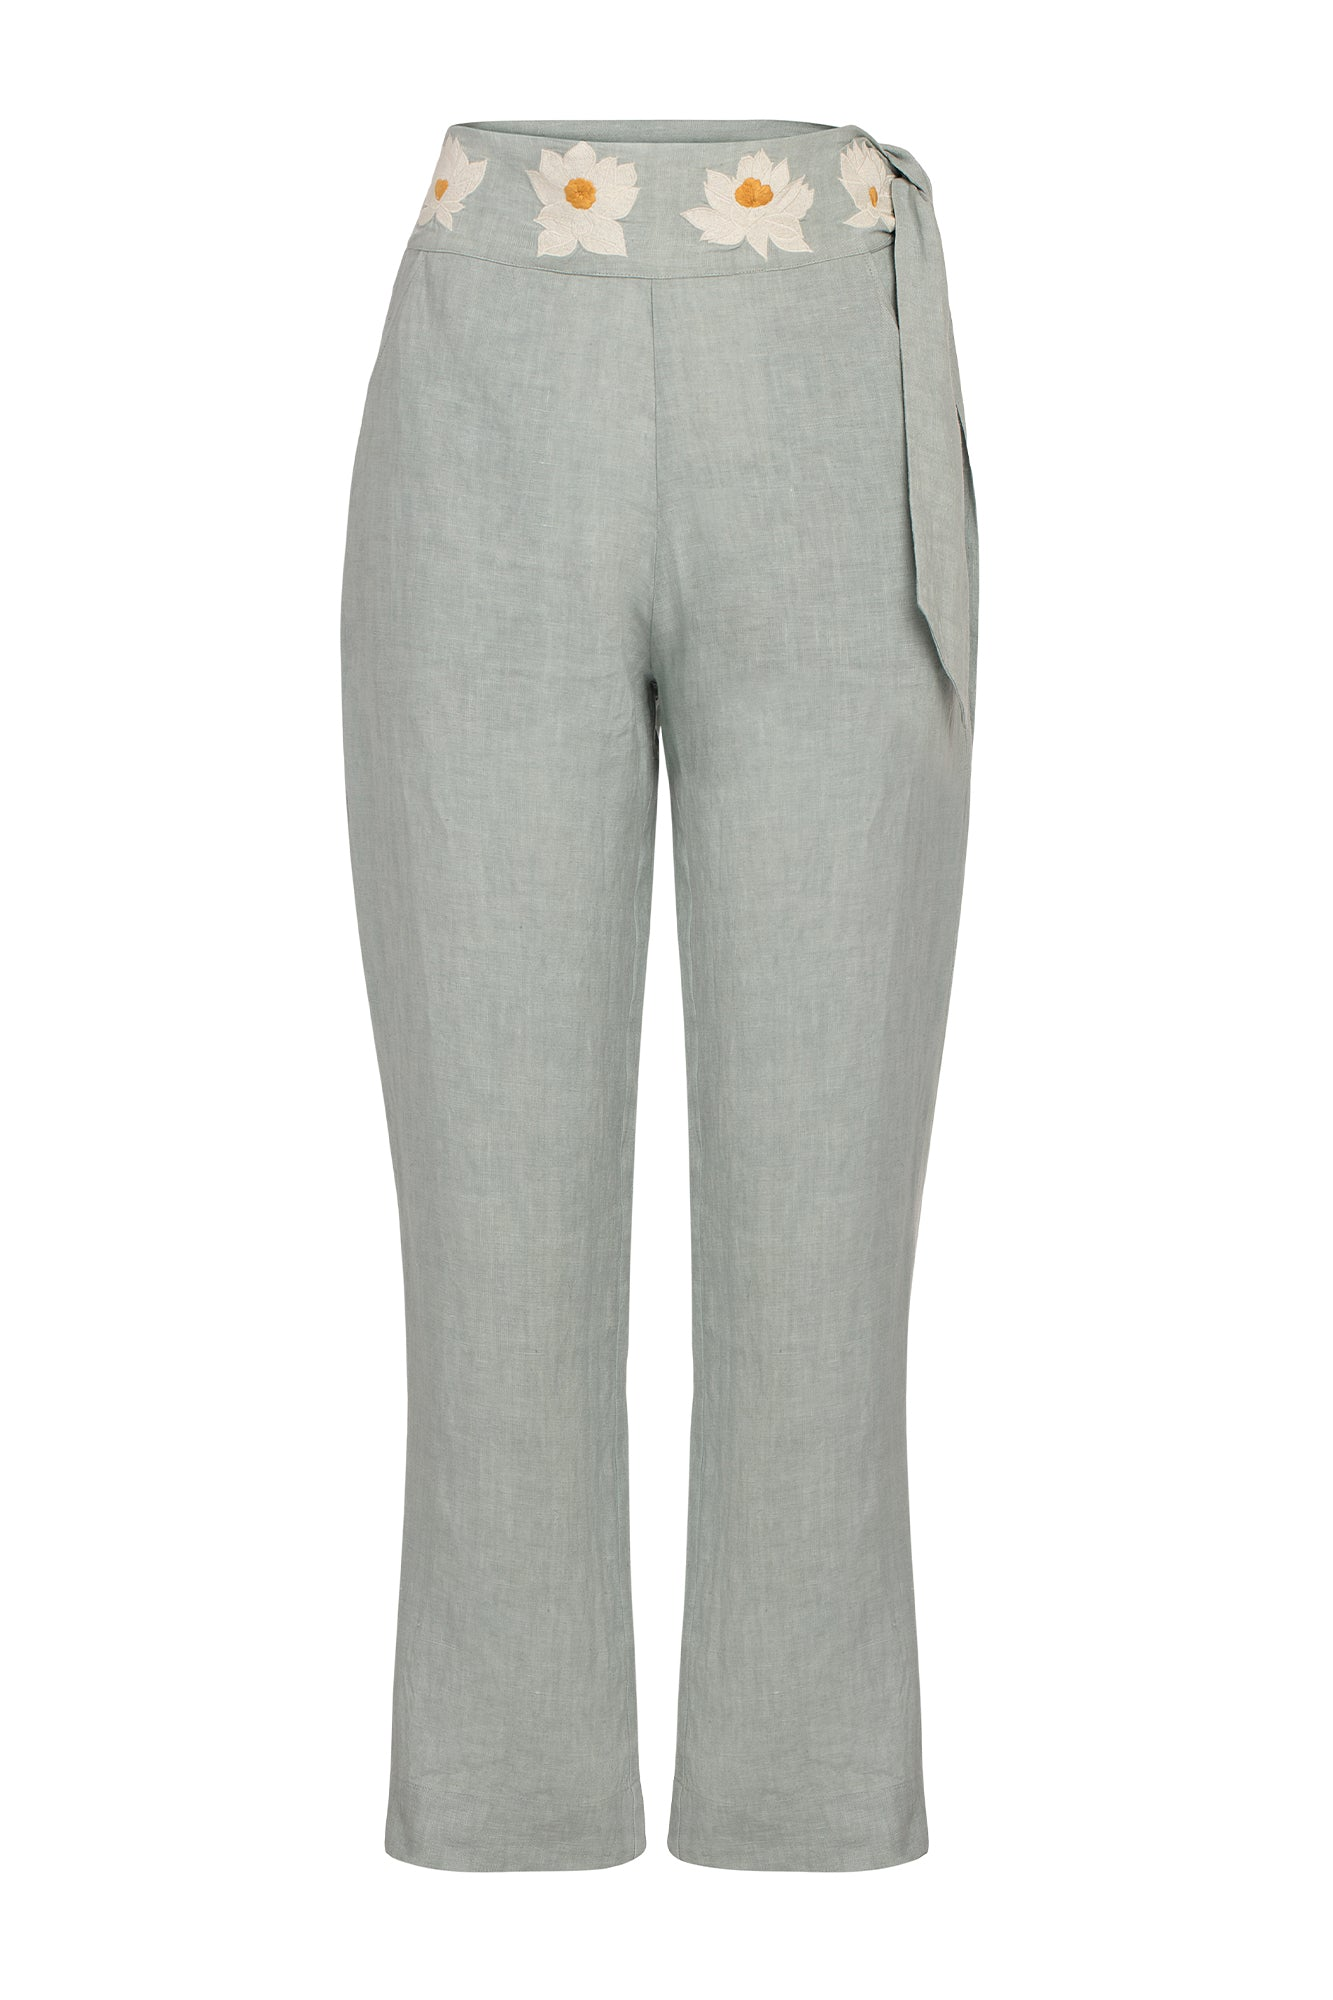 Carolina K Straight Pants in Sky Gray